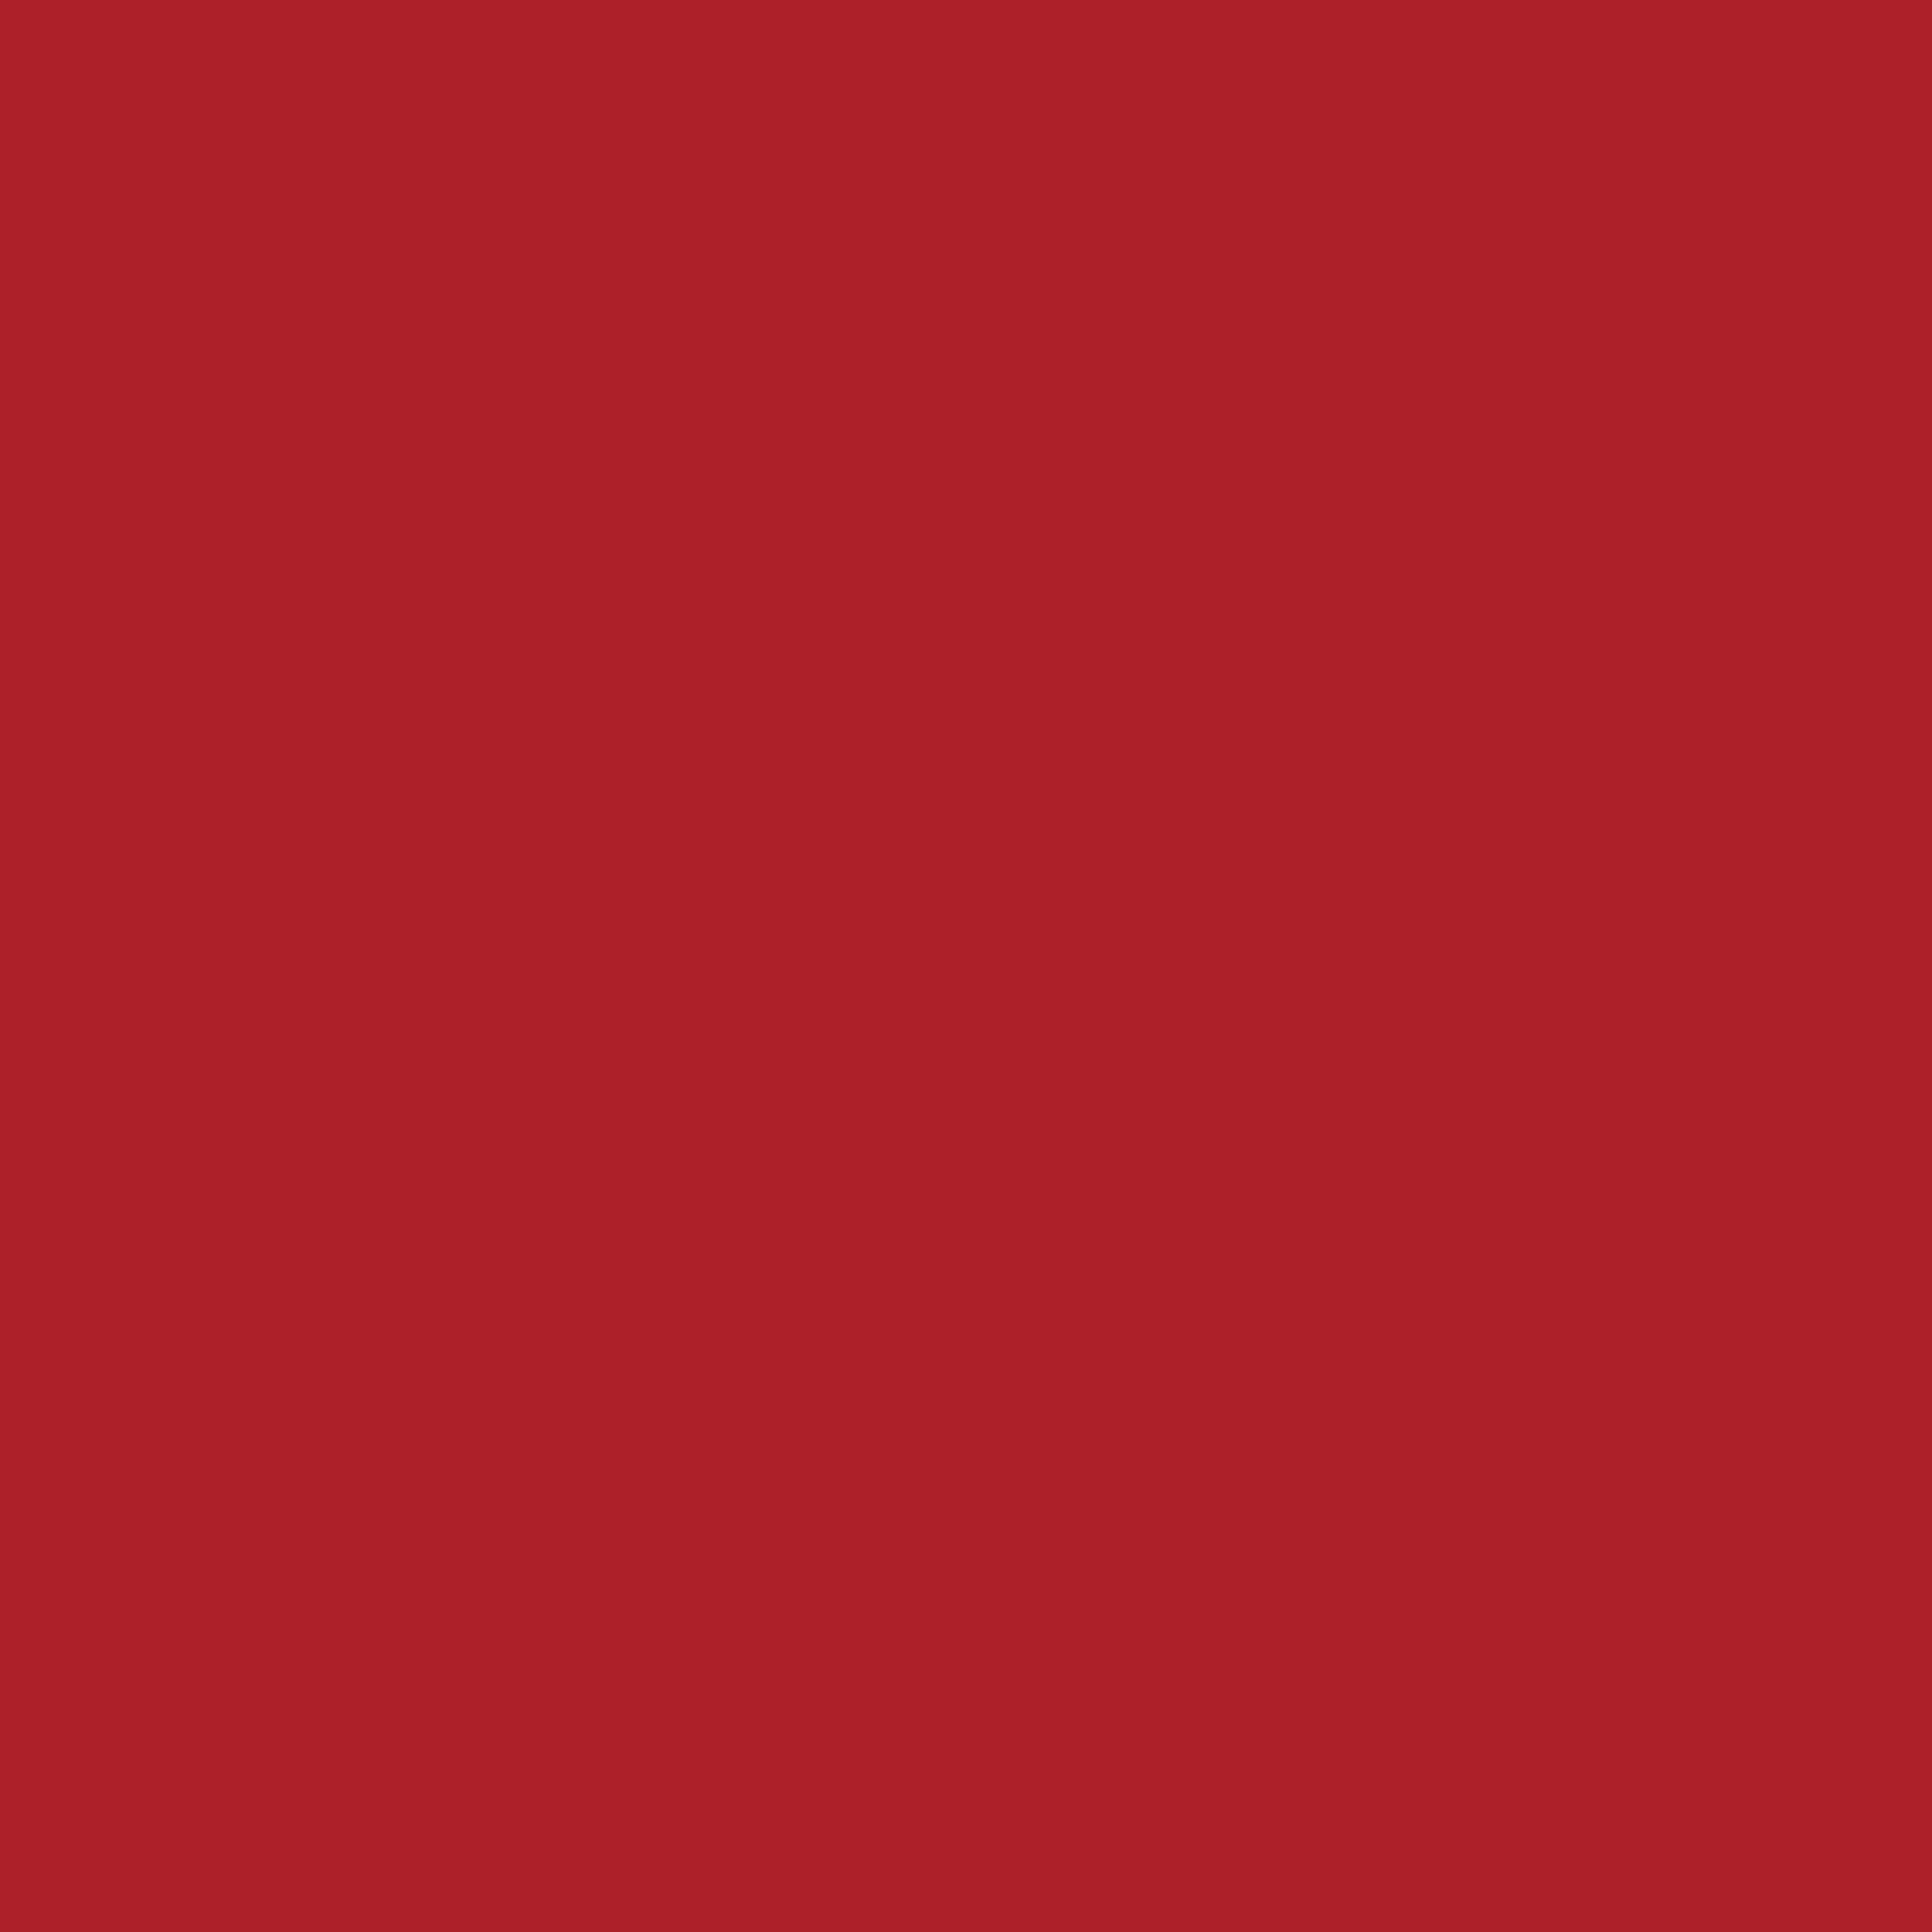 3600x3600 Upsdell Red Solid Color Background